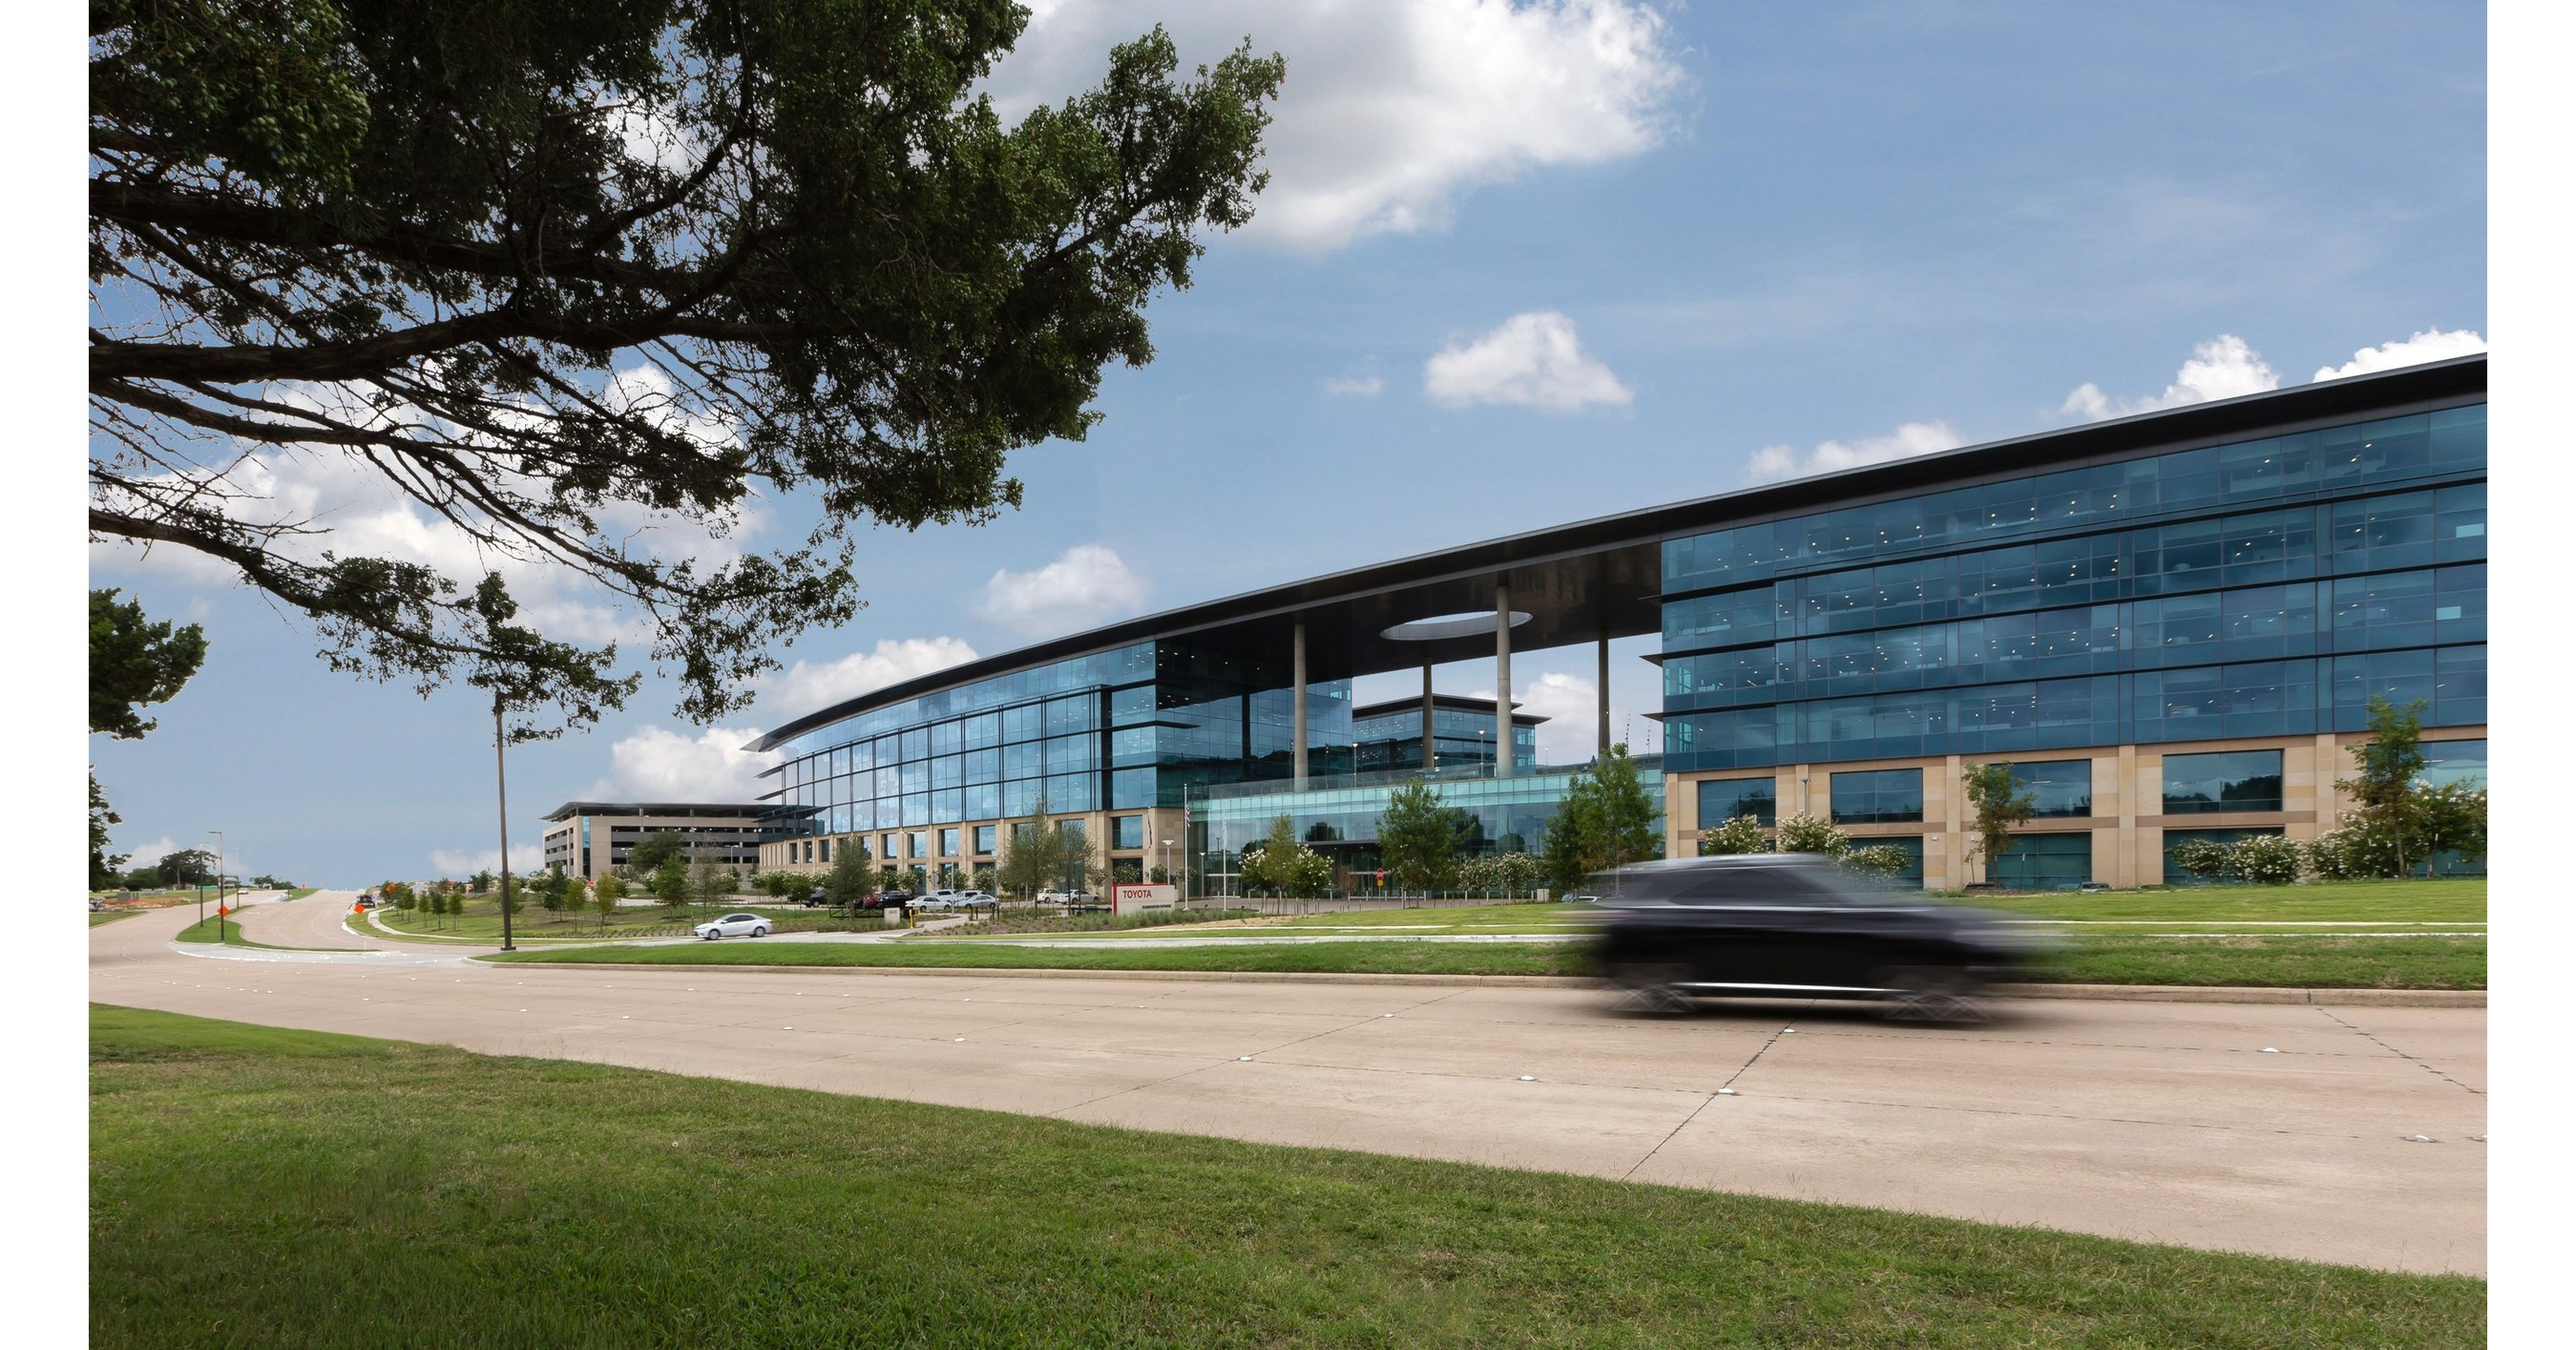 Toyota opens billion dollar state of the art north american headquarters in texas